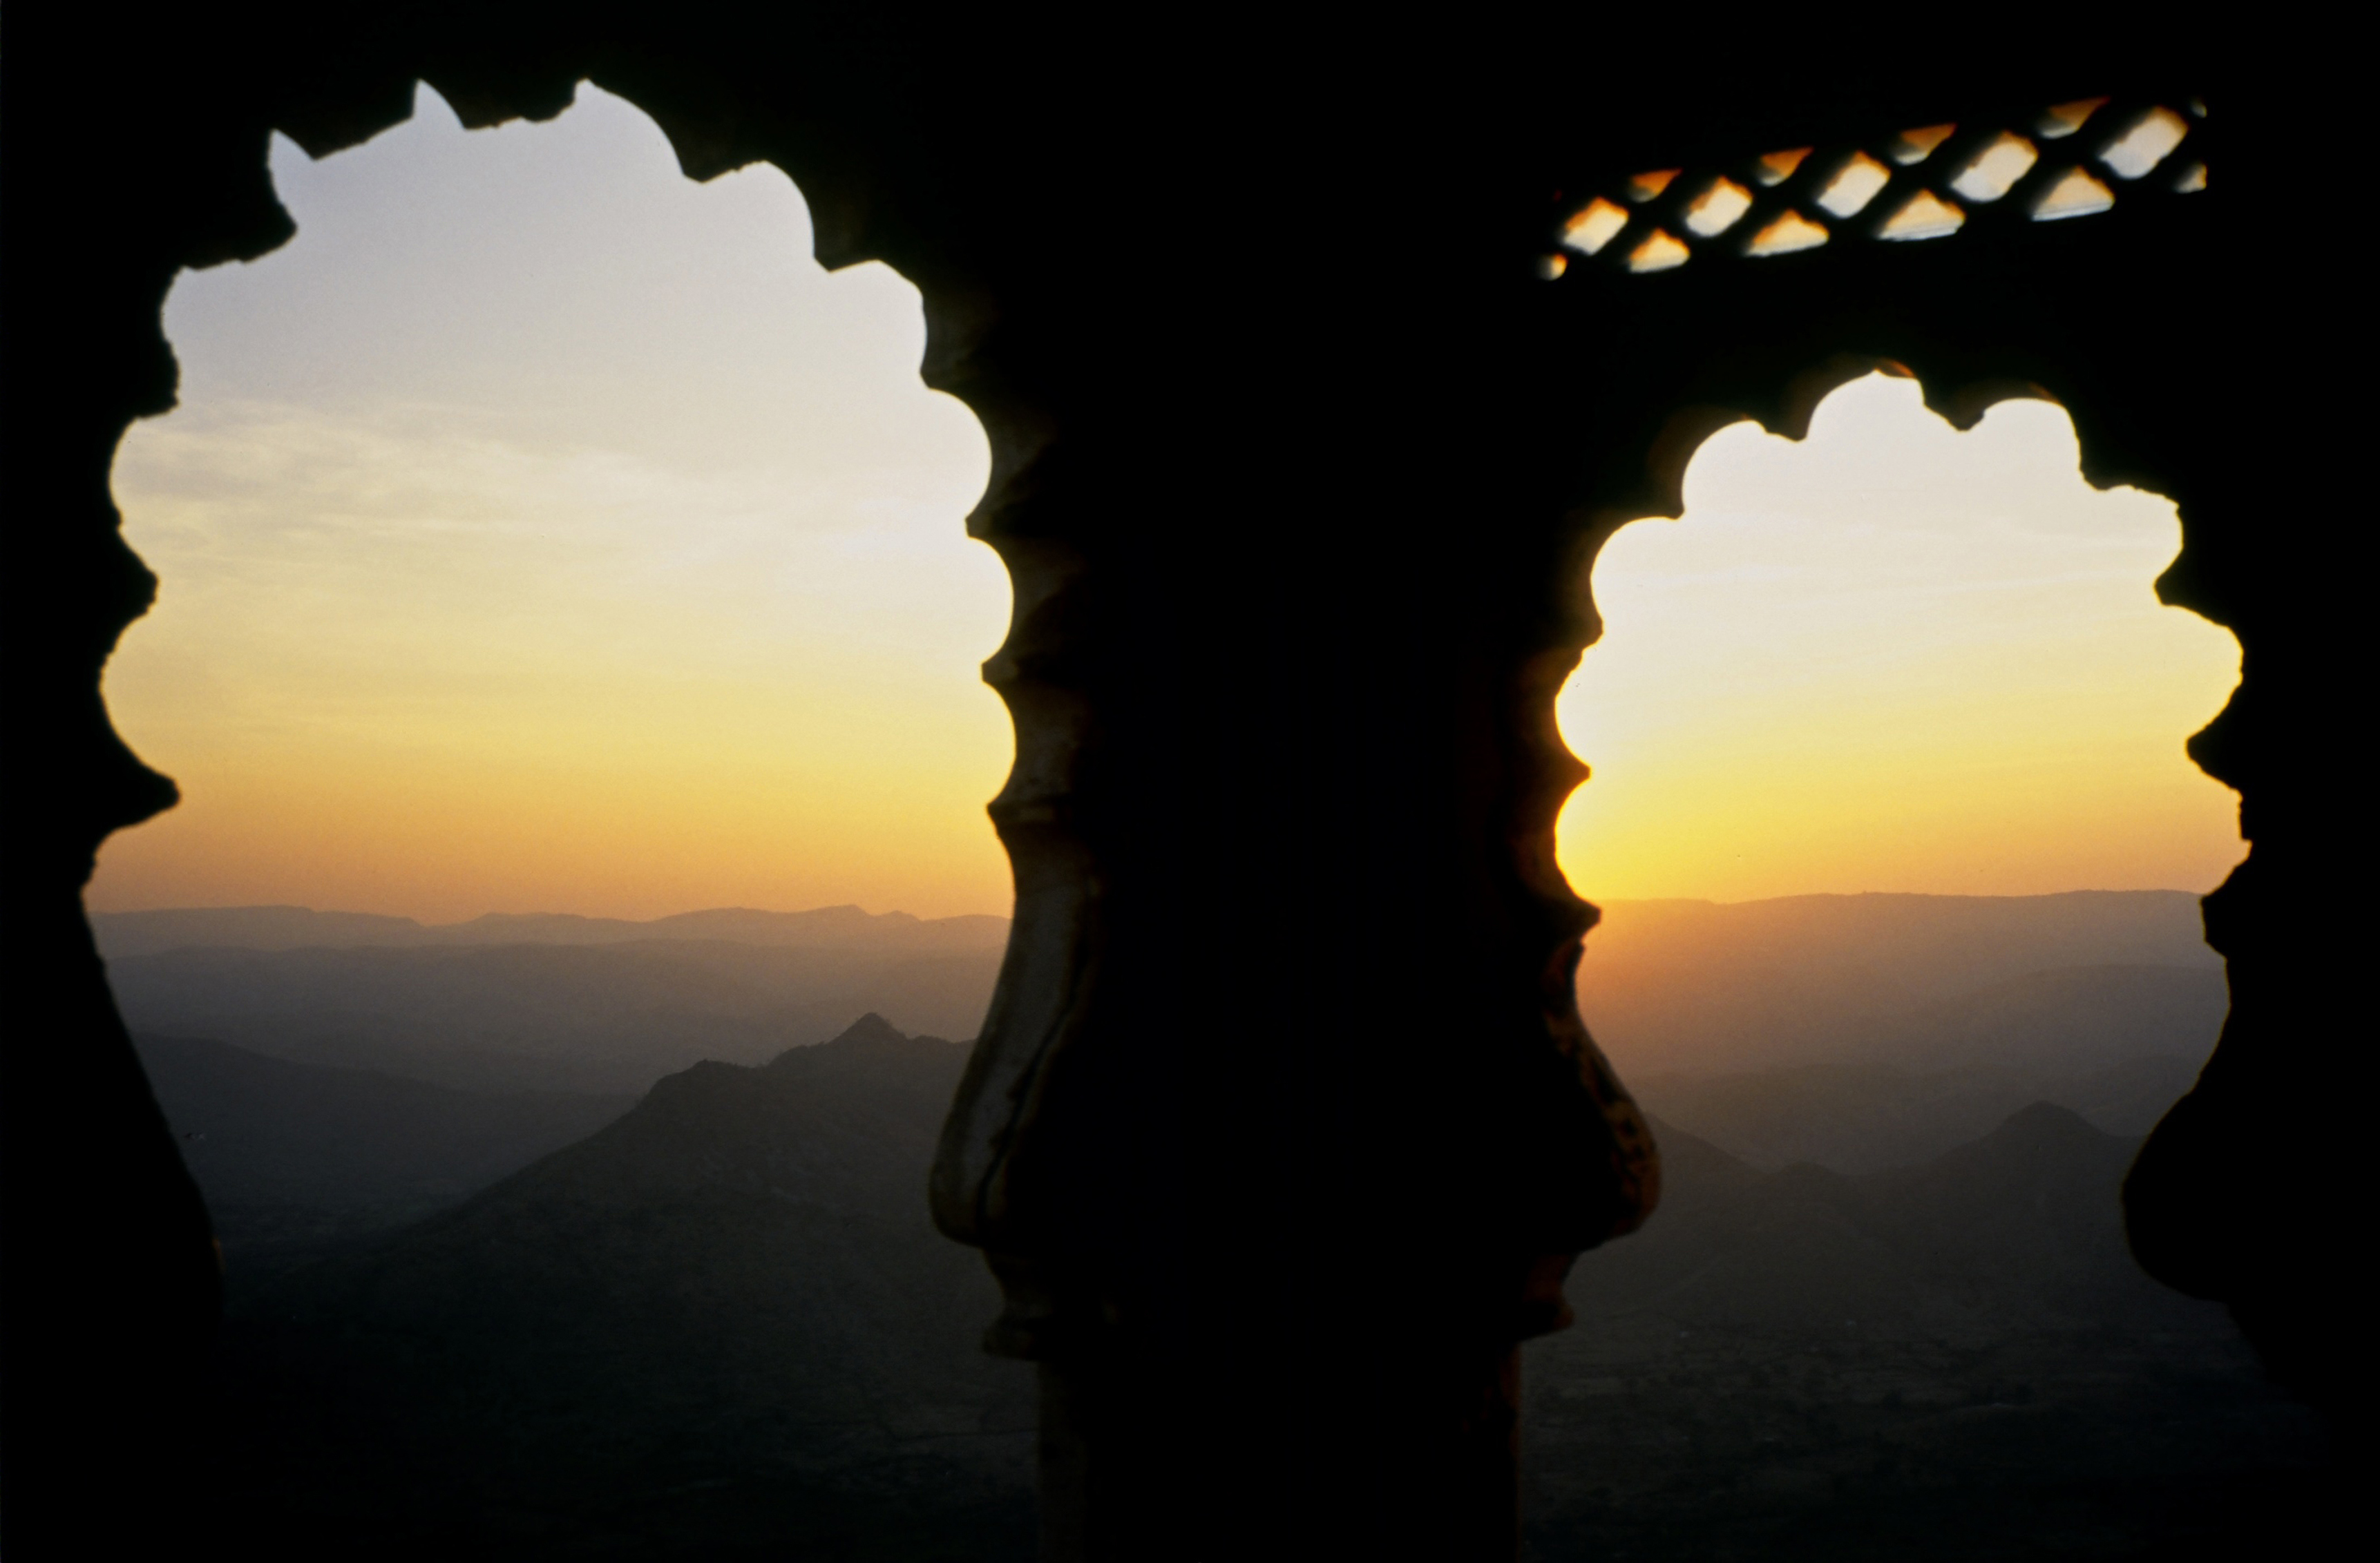 monsoon-palace-getty-images